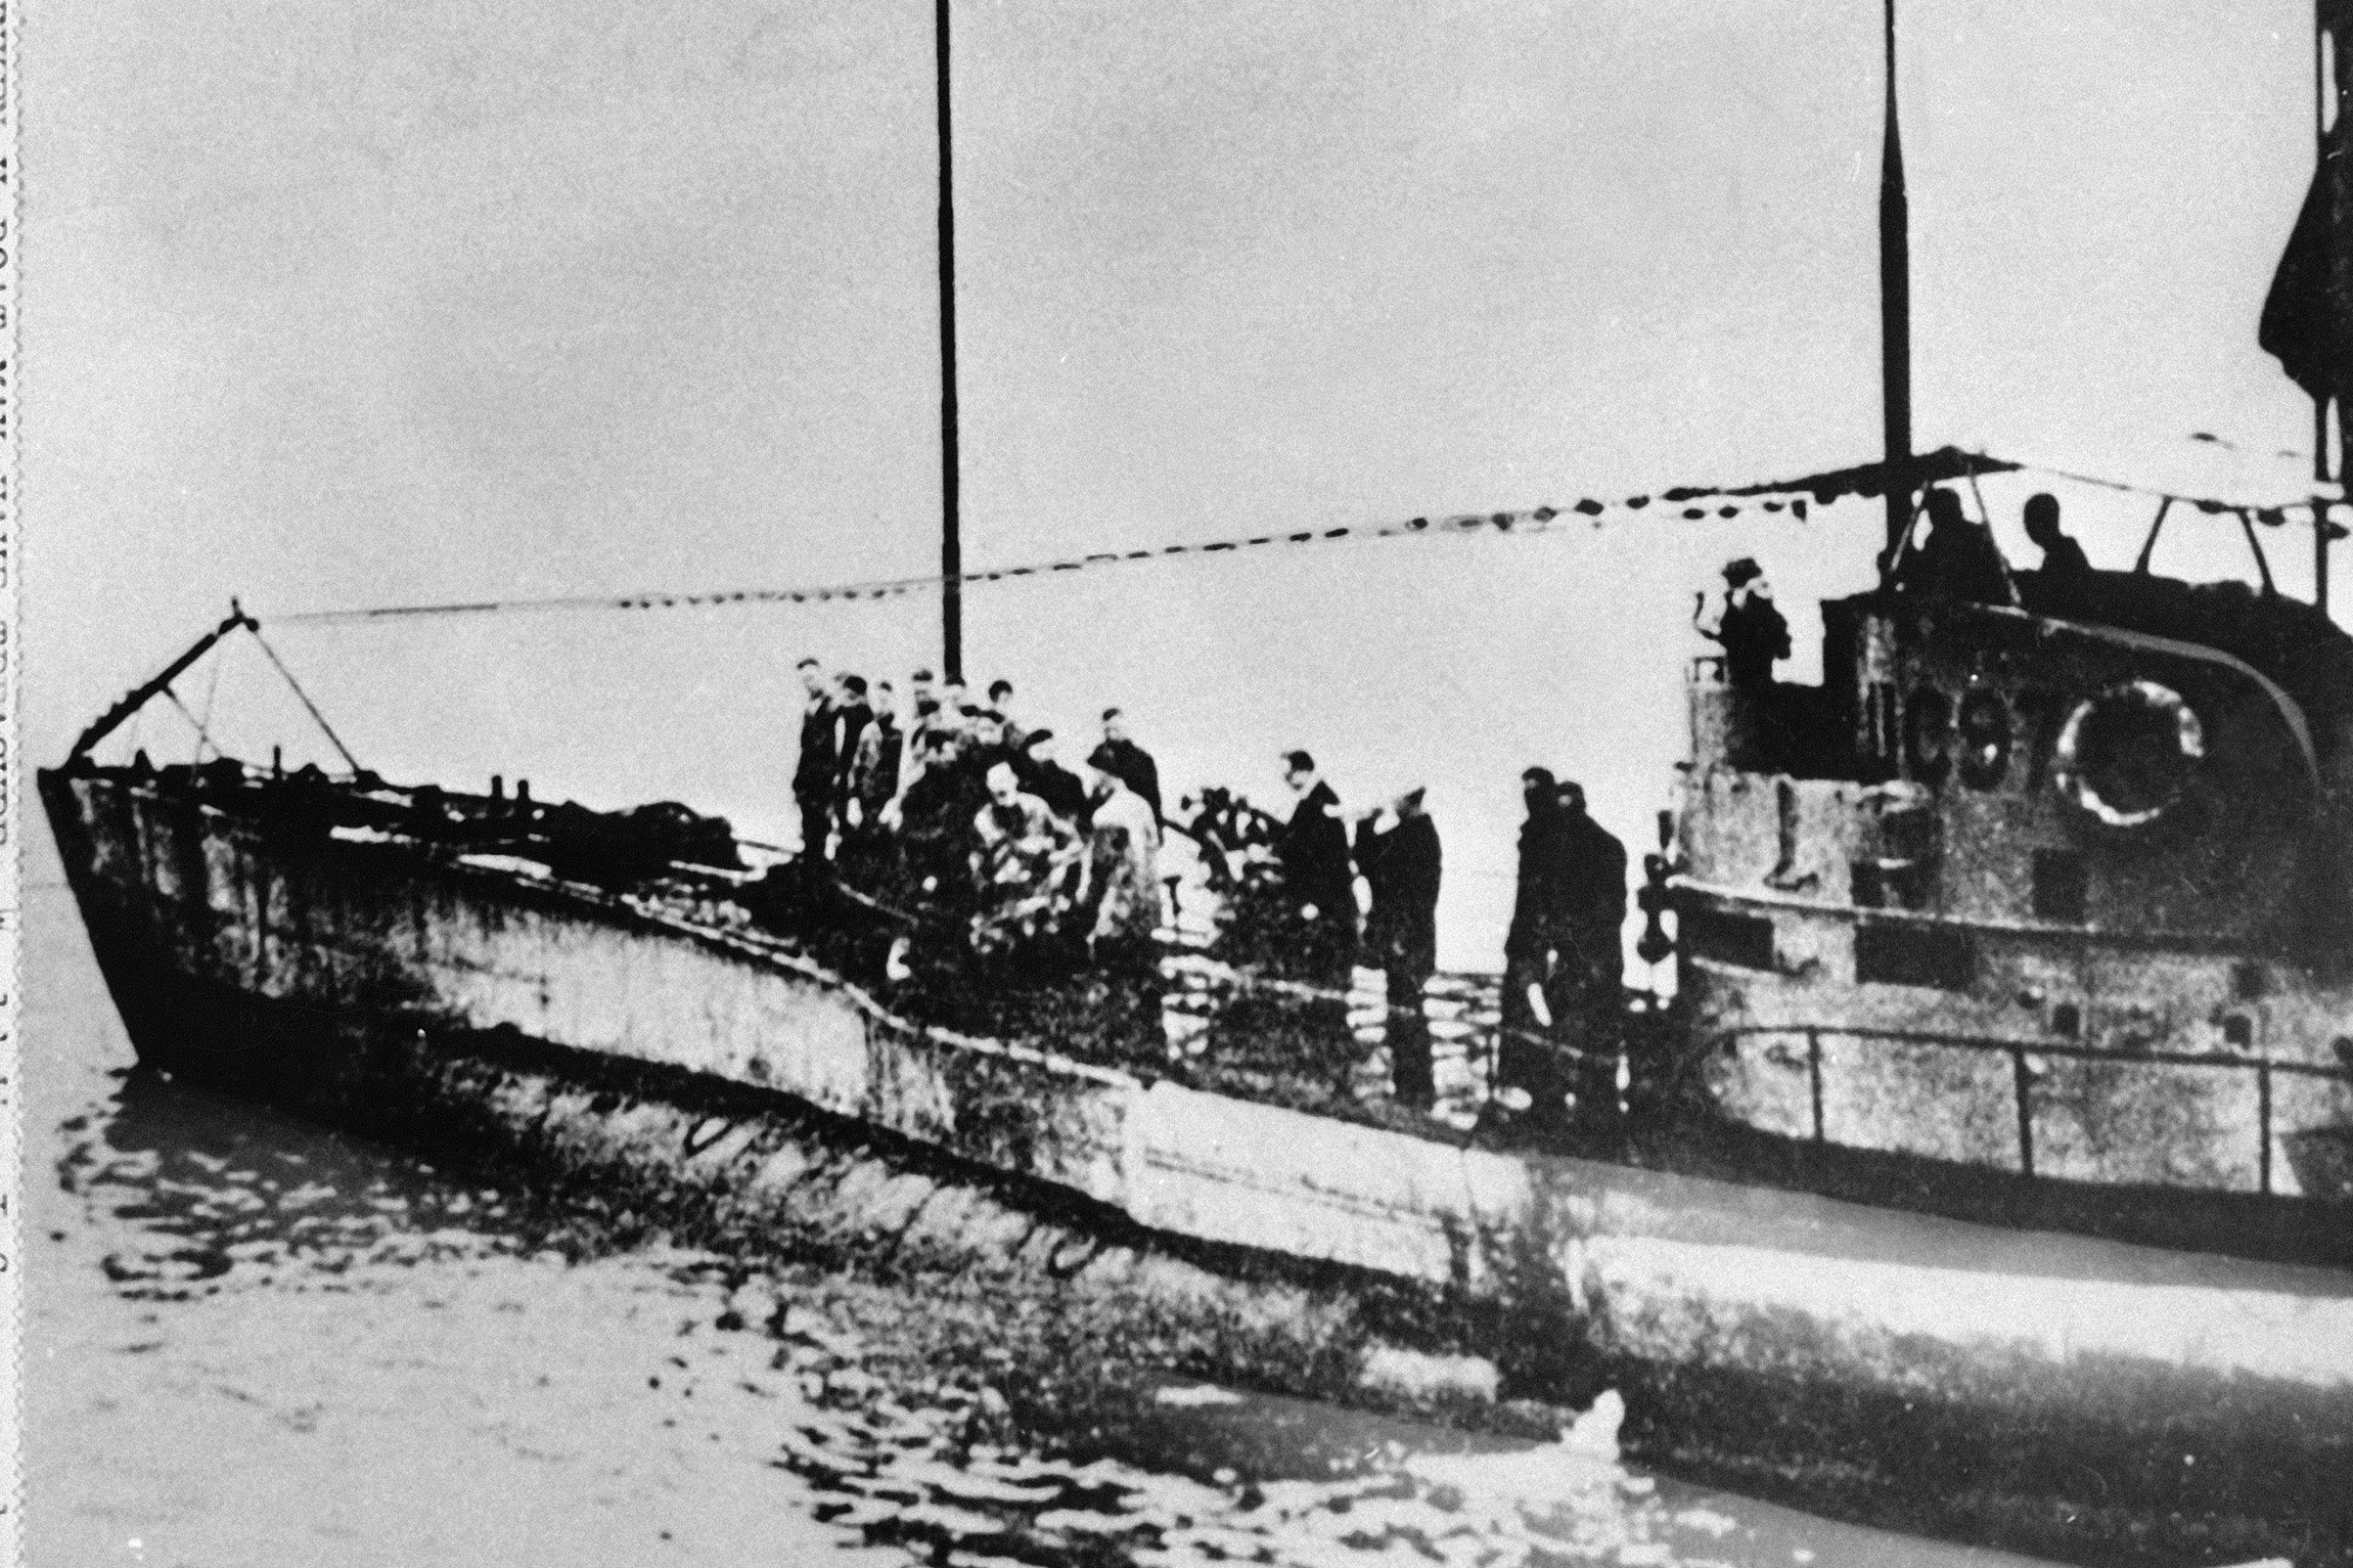 In this undated photo people stand on the deck of a World War I German submarine type UC-97 in an unknown location. Belgian regional authorities on Sept. 19, 2017 say that an intact German World War I submarine has been found off the coast of Belgium.